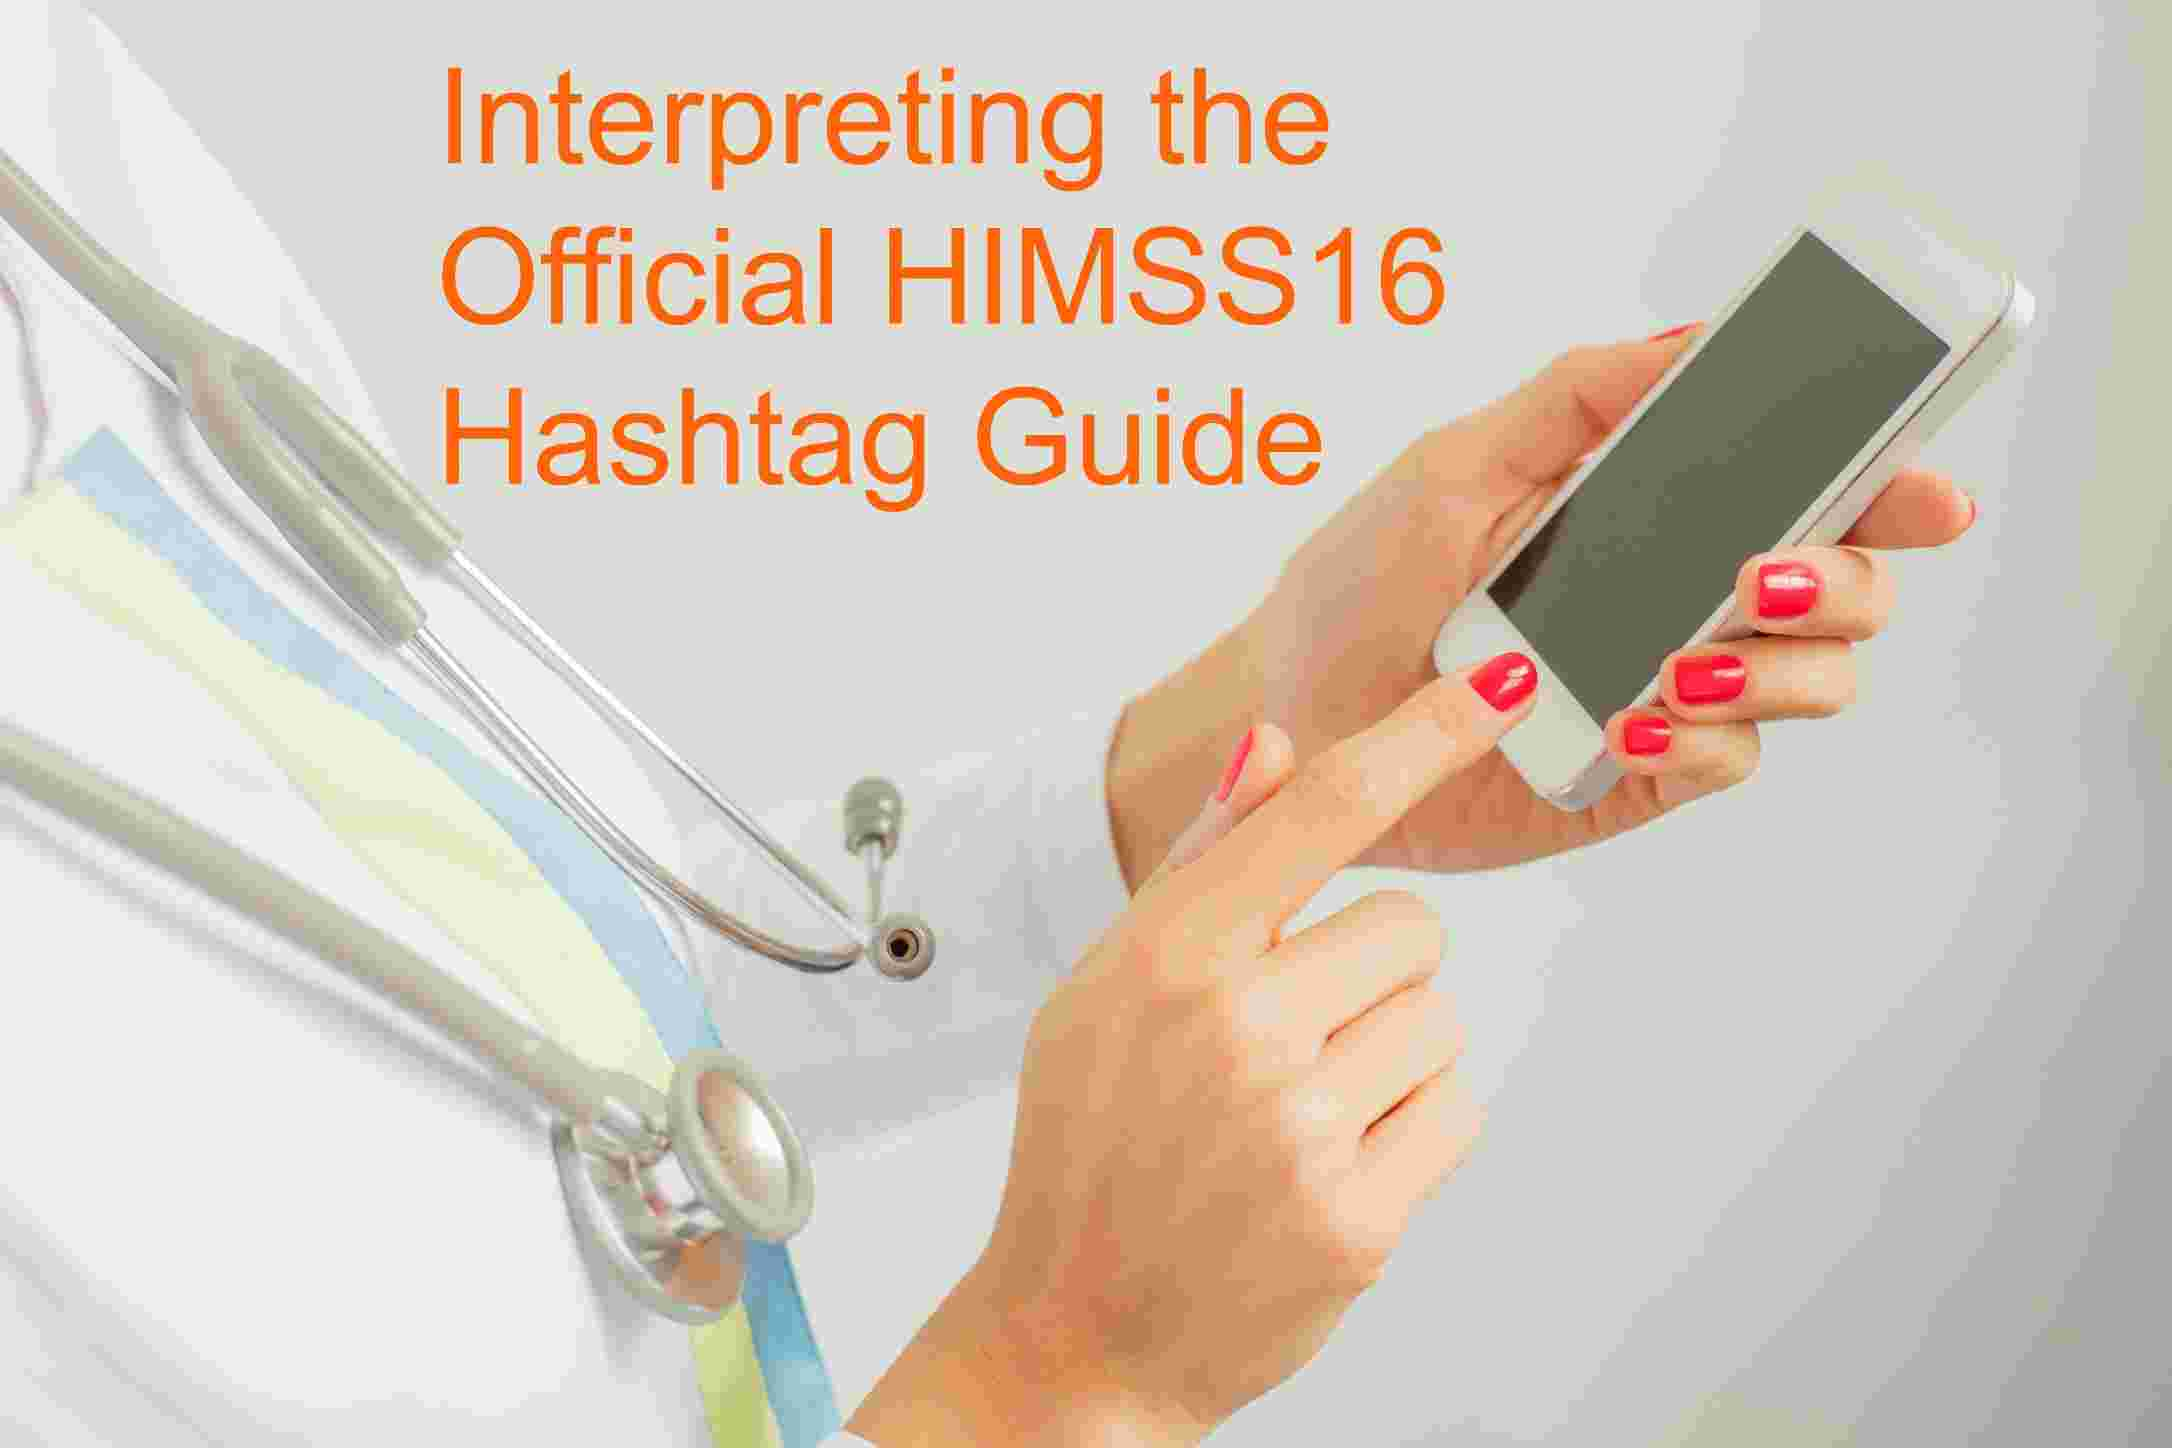 interpreting the HIMSS hashtag guide doctor hand on mobile device